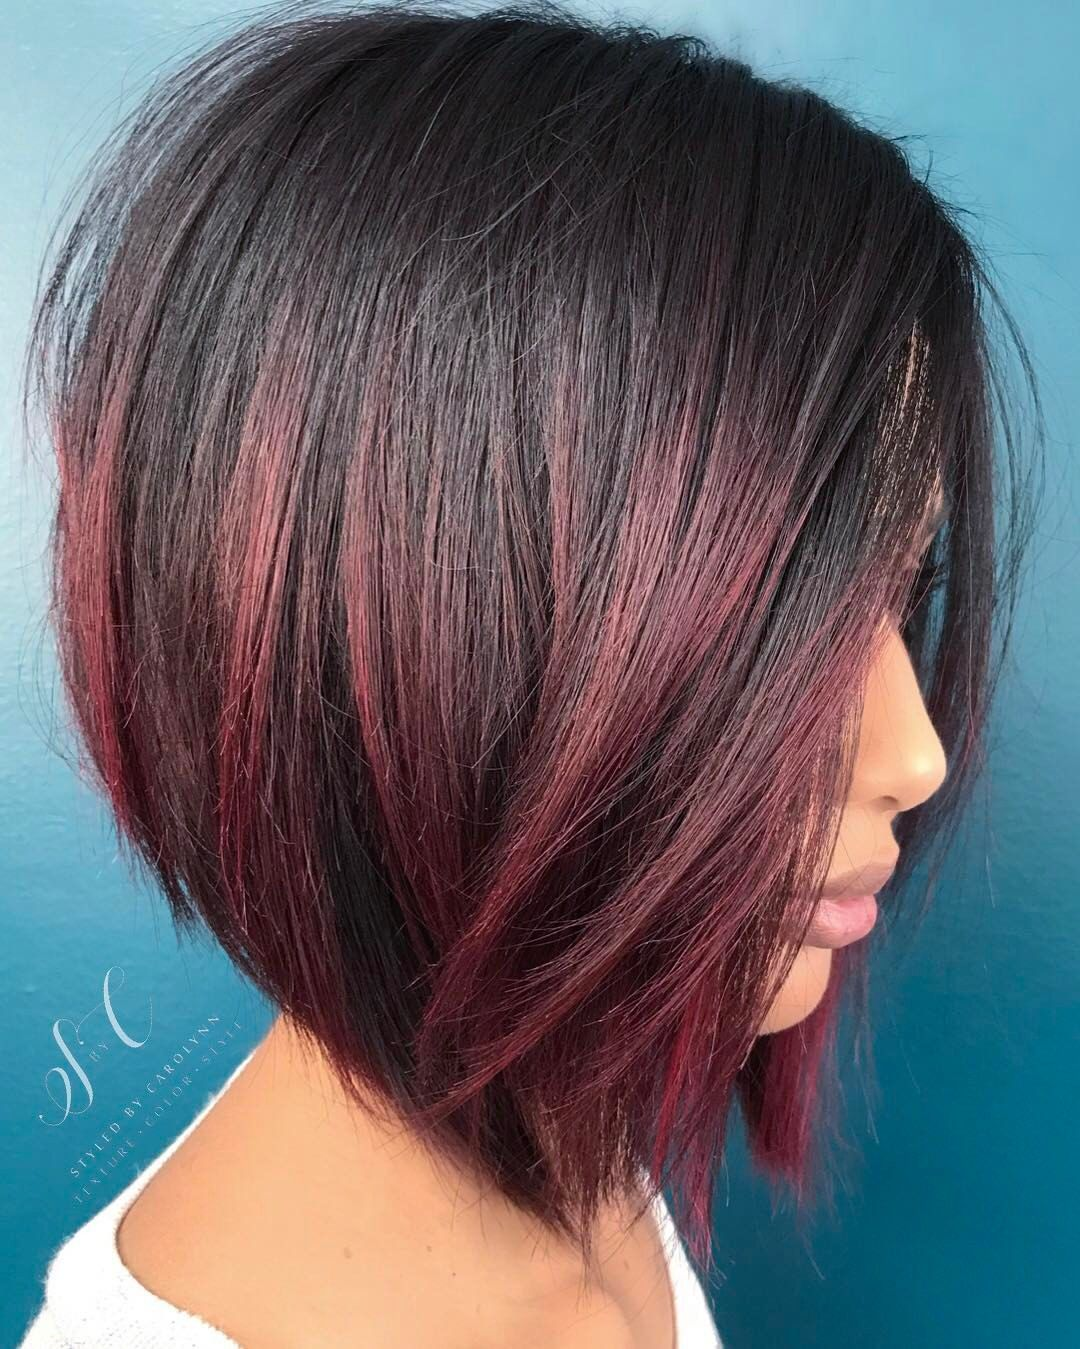 colorful hair styles pin by lombardo kendall on tips 2257 | 8361d659044b0ac7ddec2c2257fbad6a